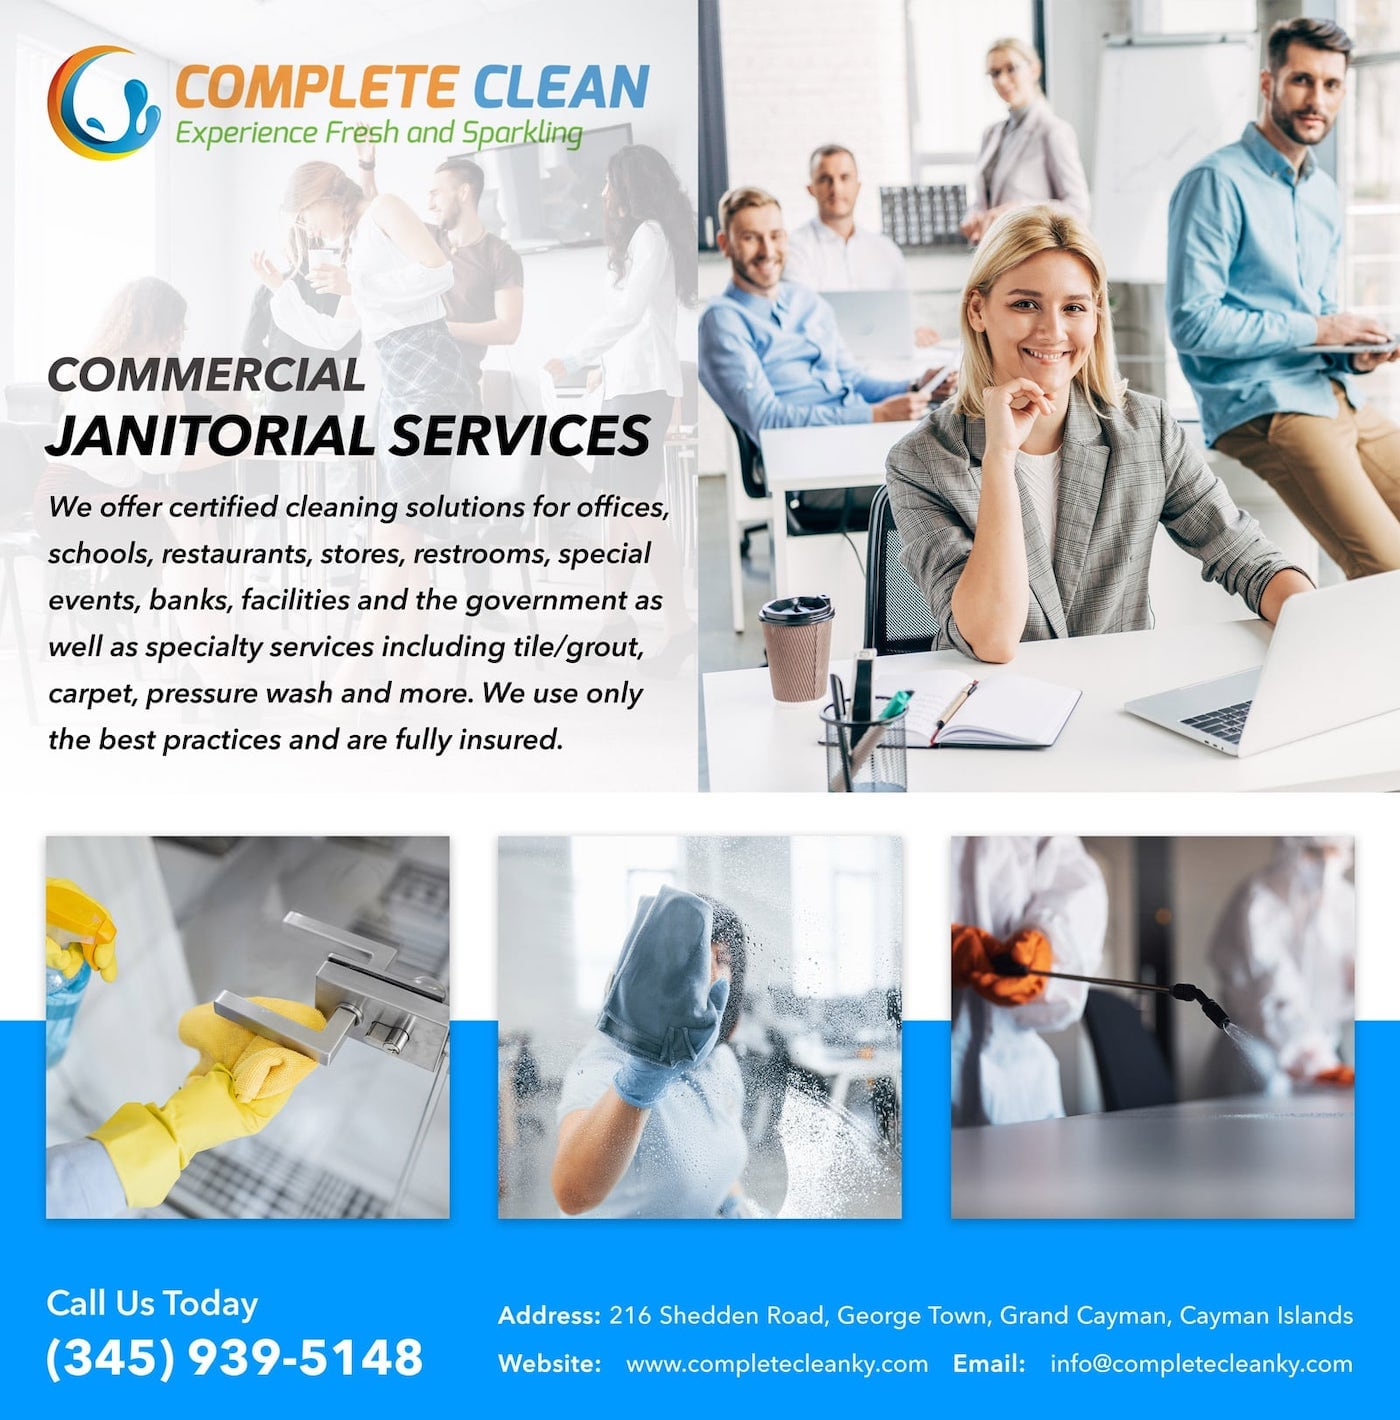 Complete Clean - Cayman Cleaning Services for Business, Offices, Schools